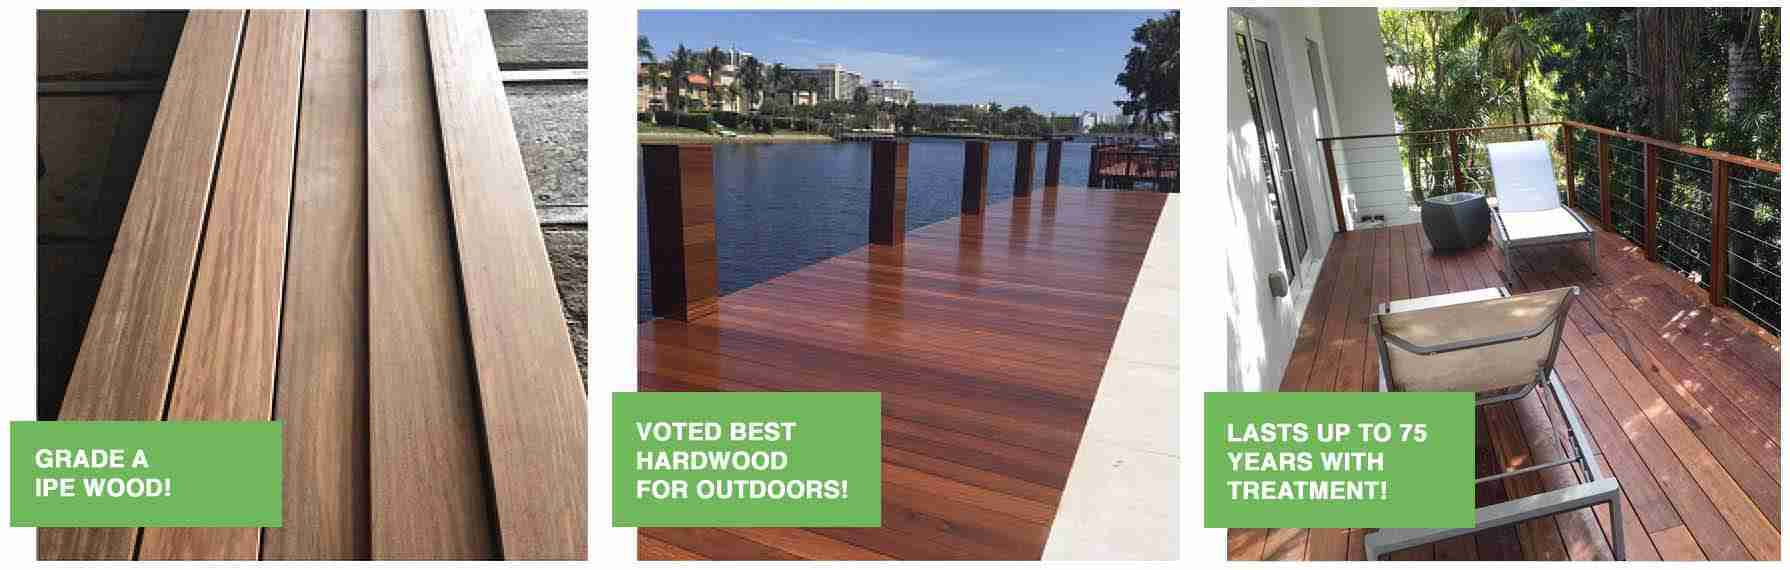 grade A ipe boards displayed together and freshly oiled ipe wood dock overlooking the intracoastal waterway